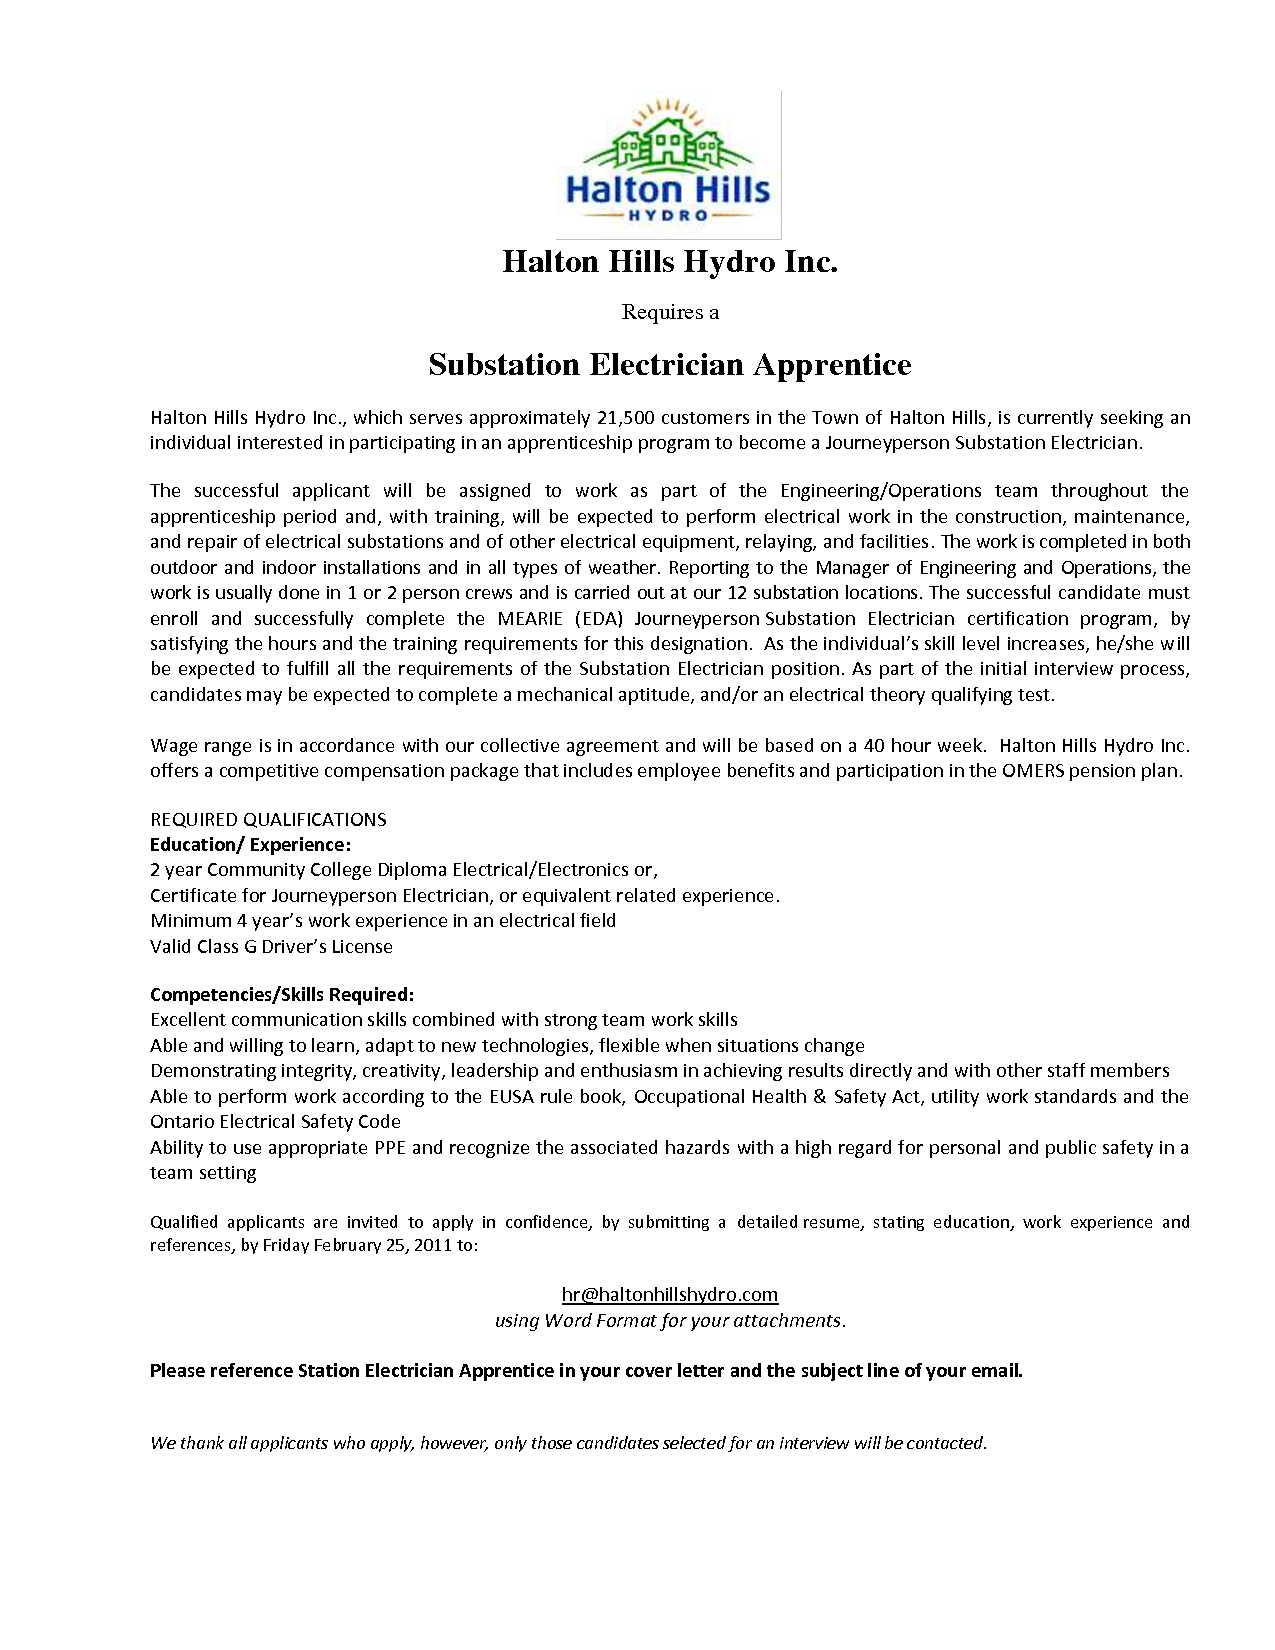 electrician apprentice cover letter - Cover Letter For Apprenticeship